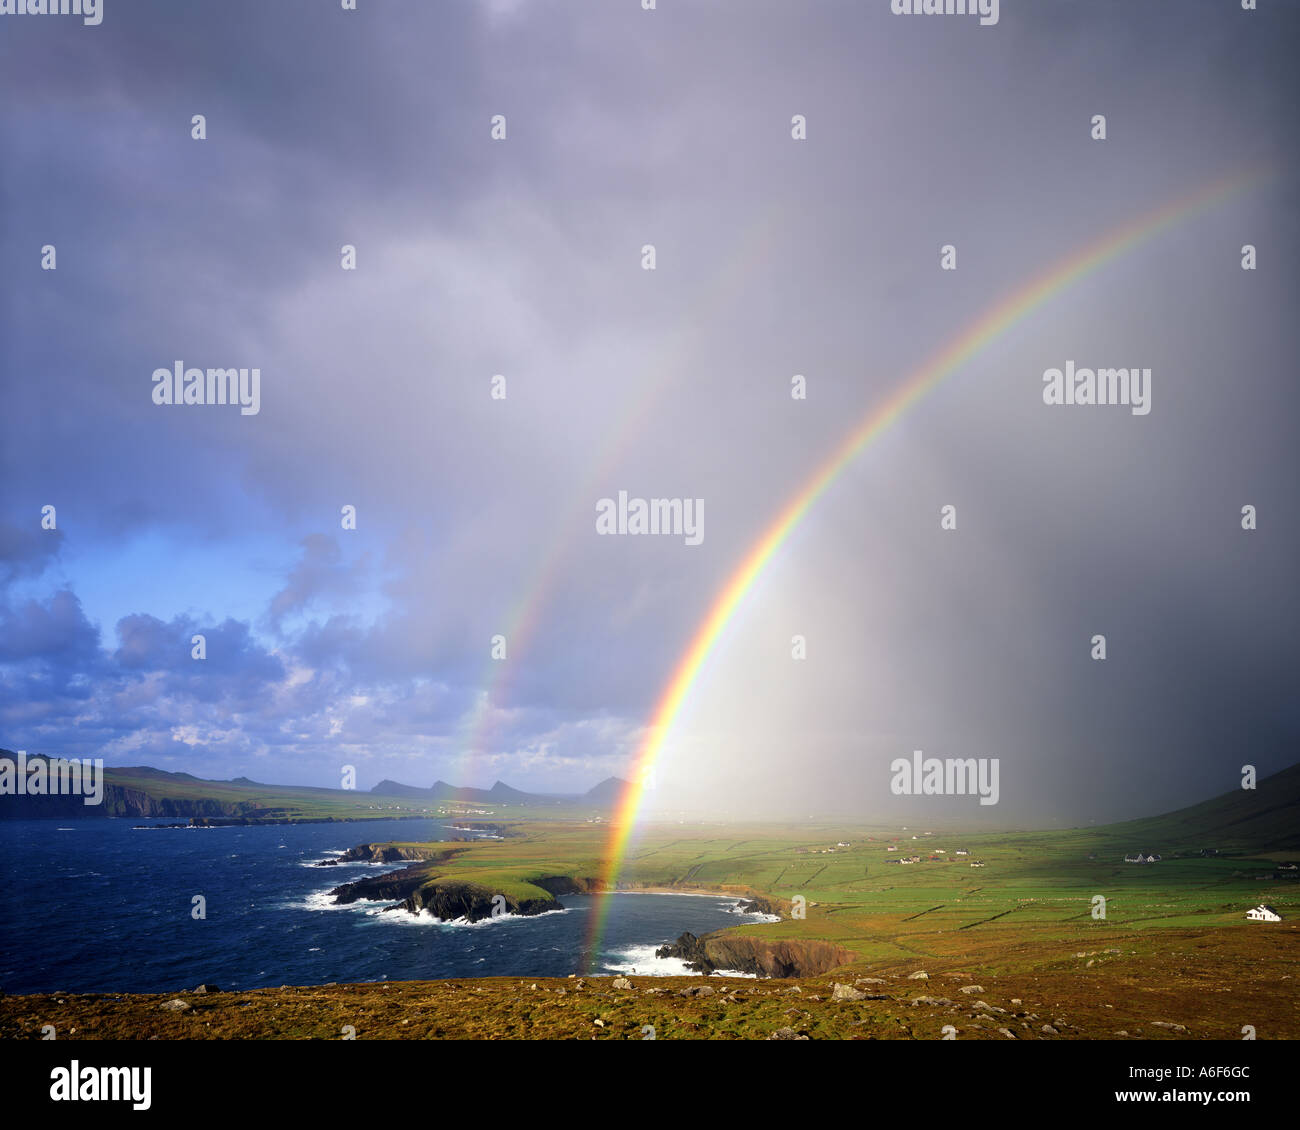 IE - CO. KERRY: Regenbogen über Ballyferriter Bay auf der Dingle-Halbinsel Stockbild